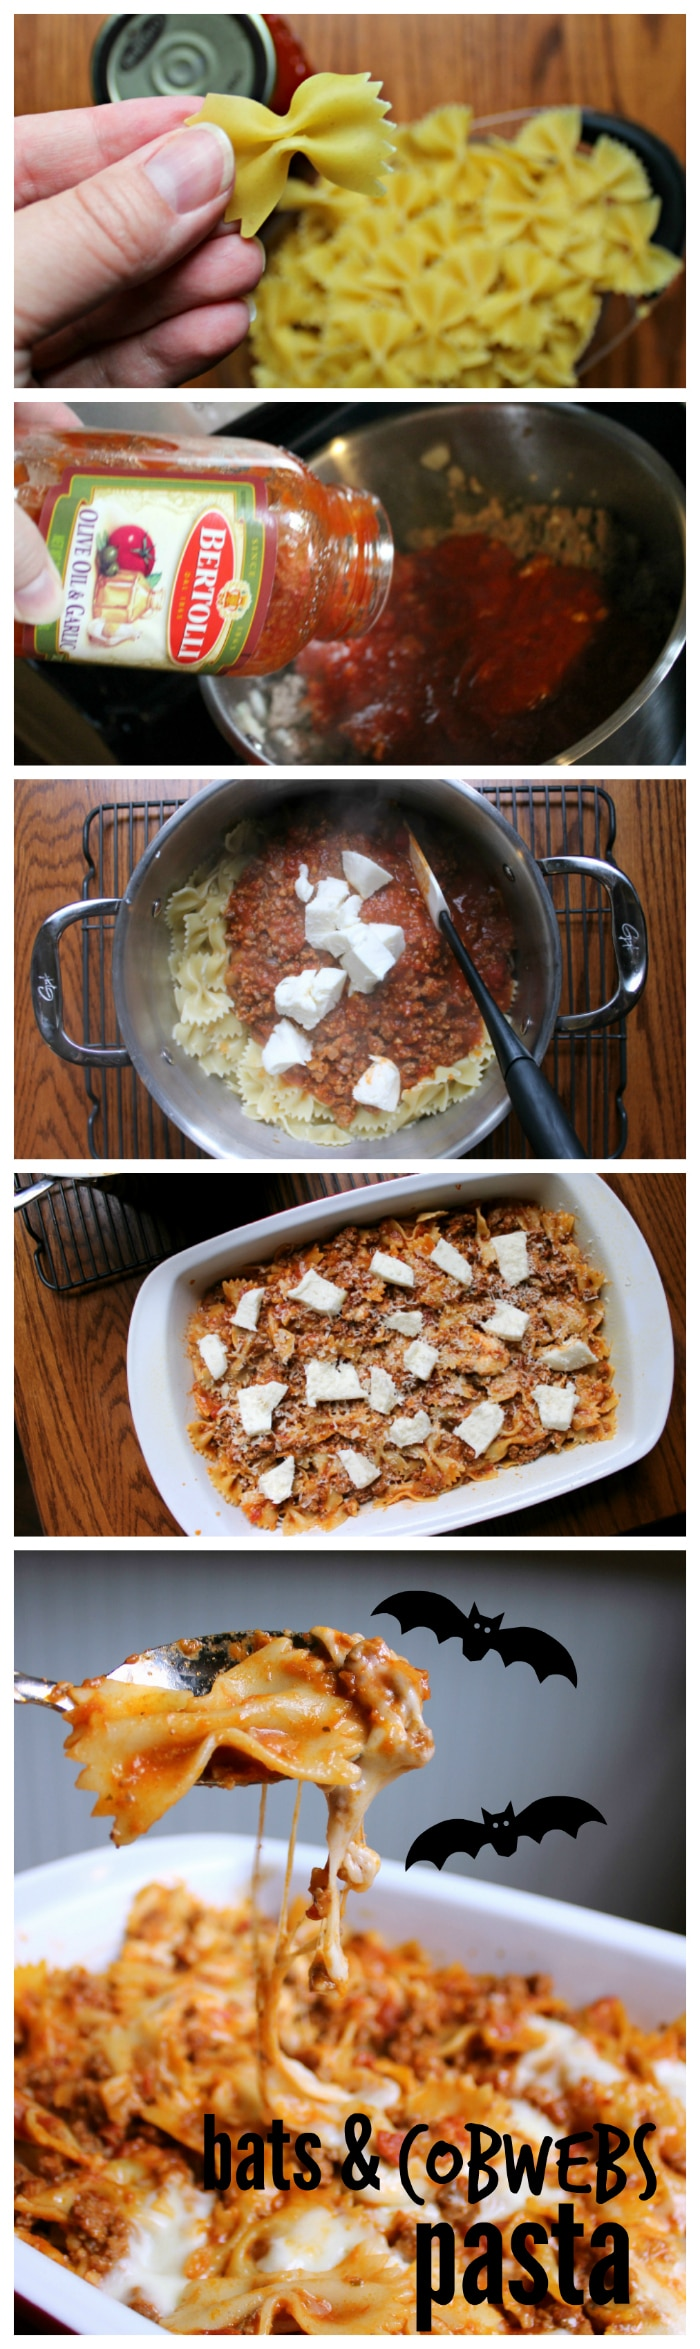 baked pasta recipe for Halloween and fall